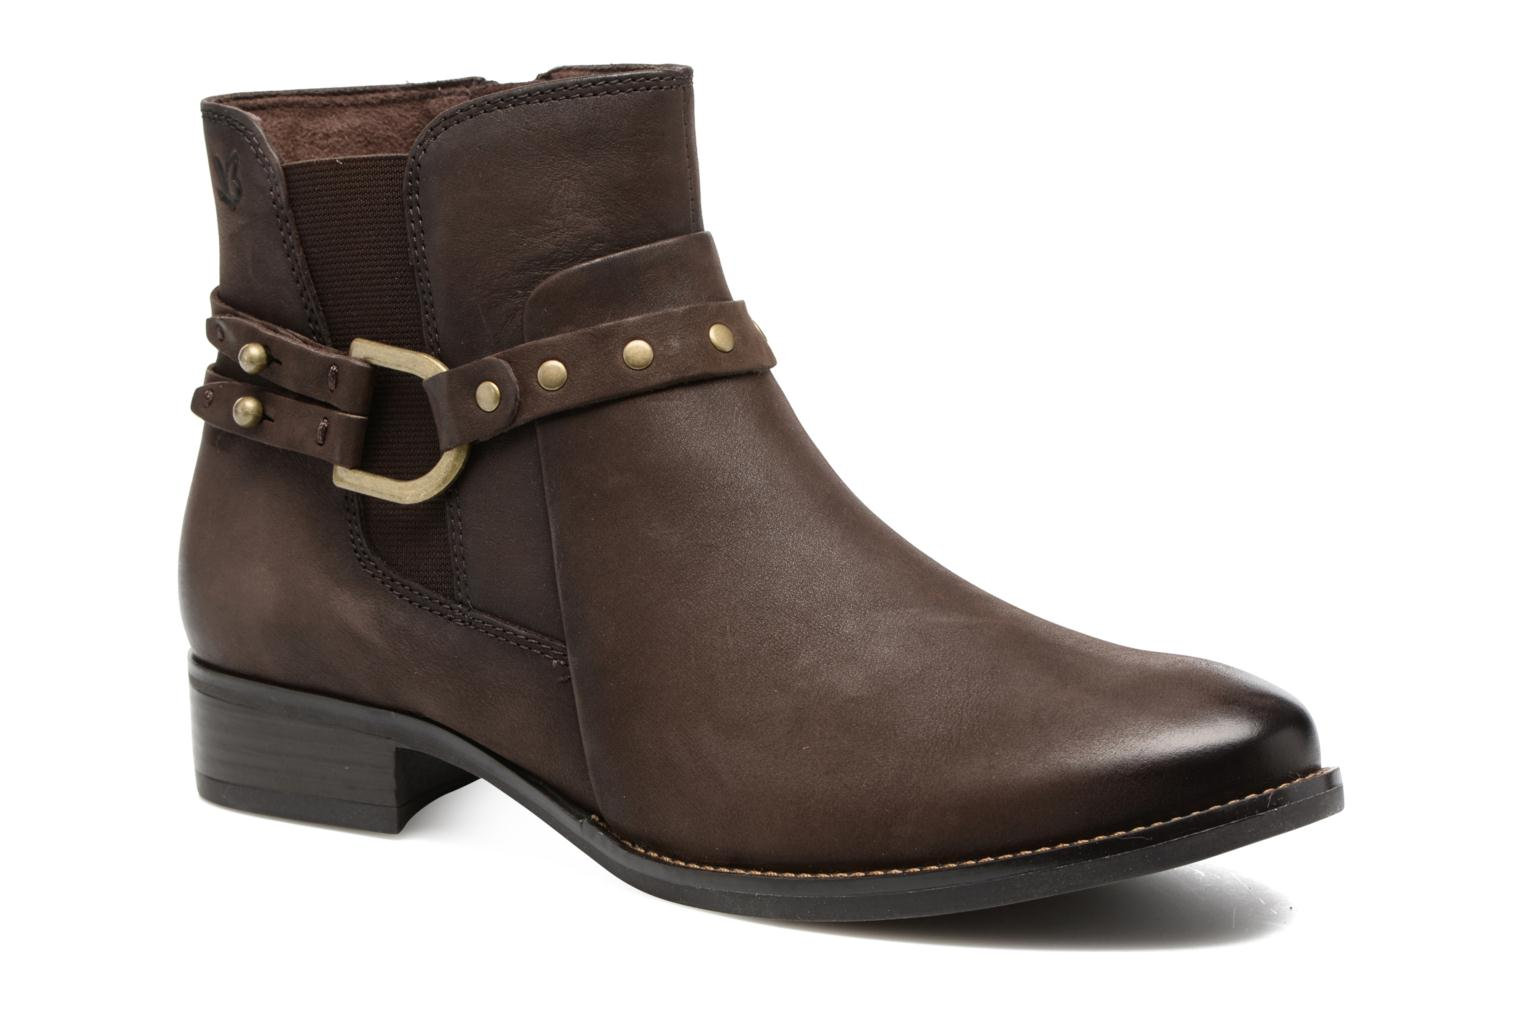 Kapria Dark Brown Nubuc